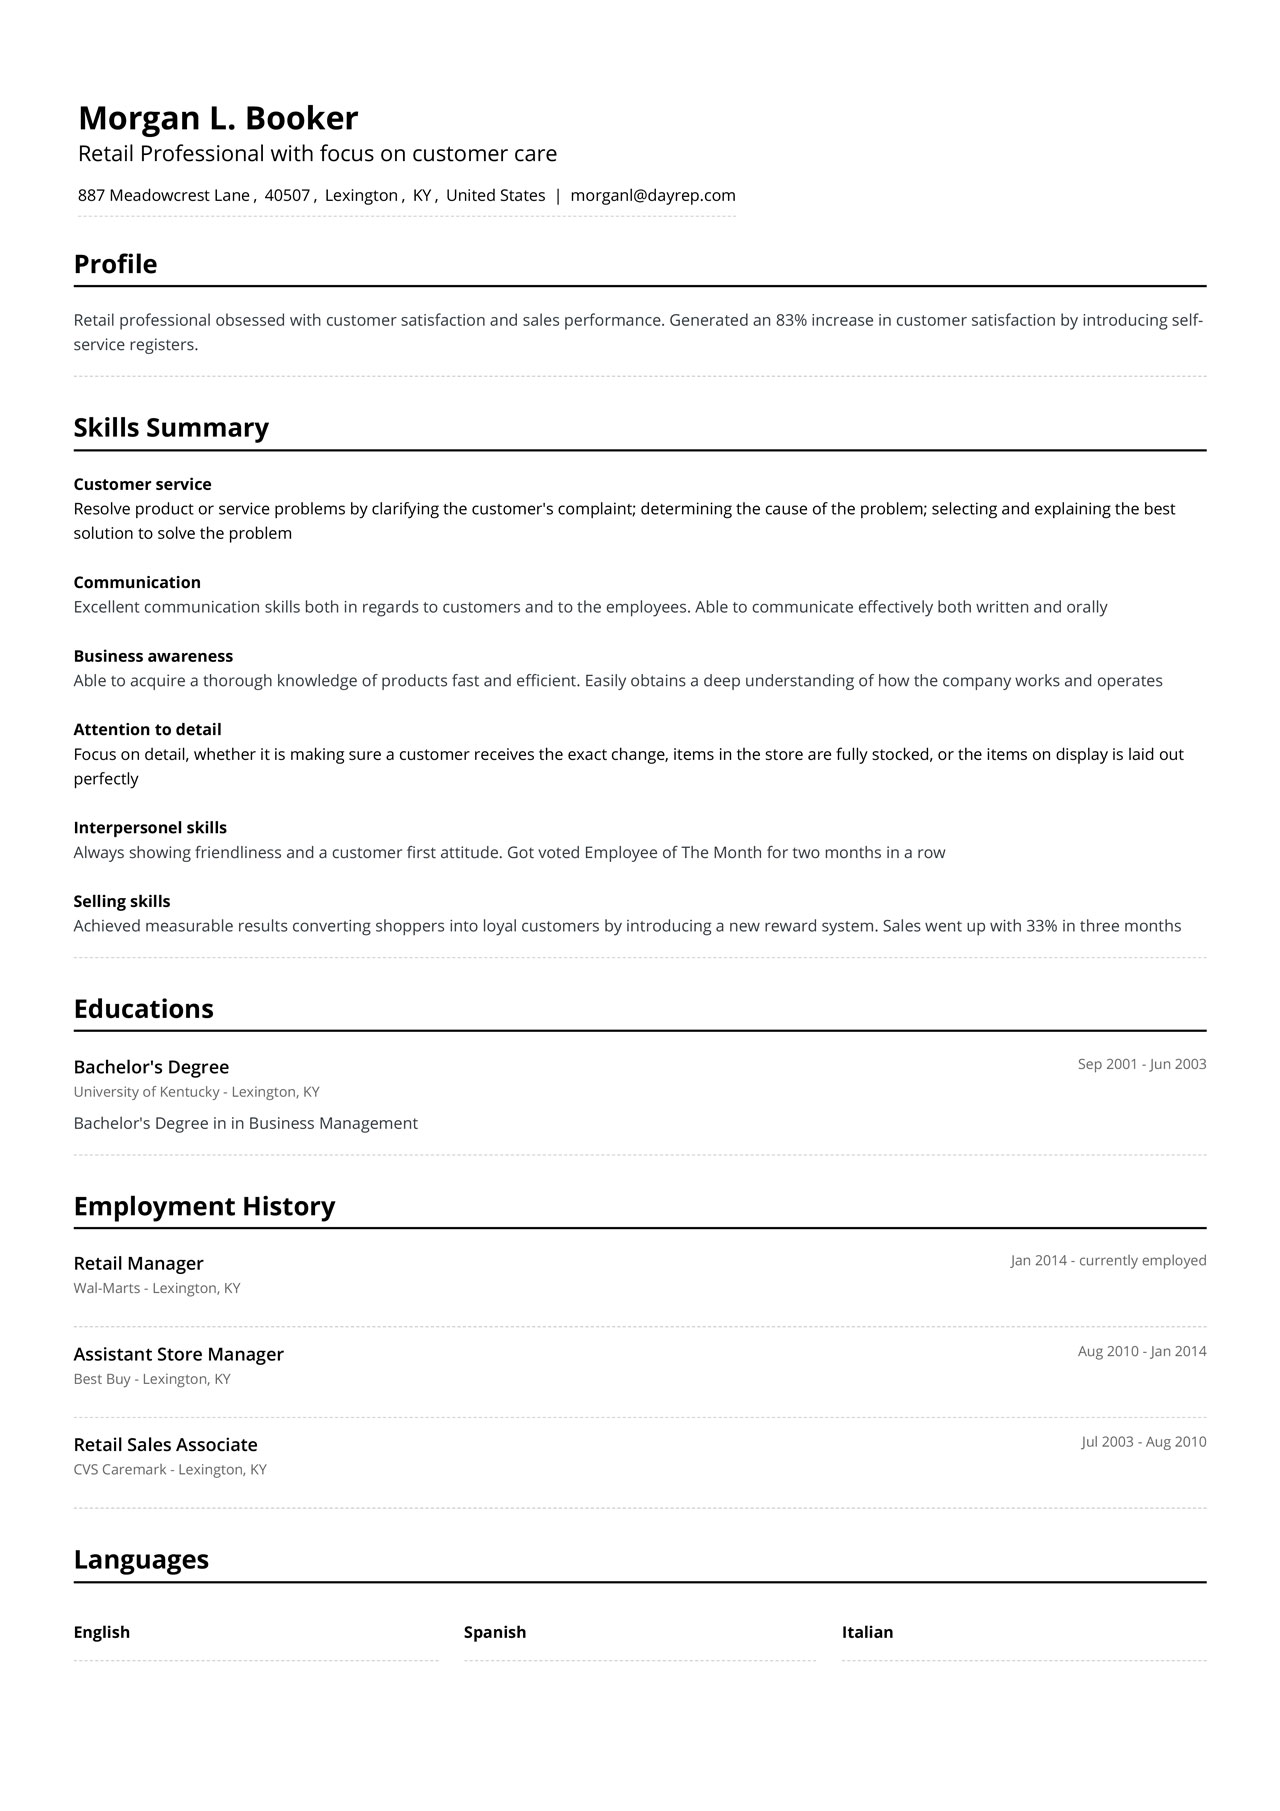 Example of a functional CV format